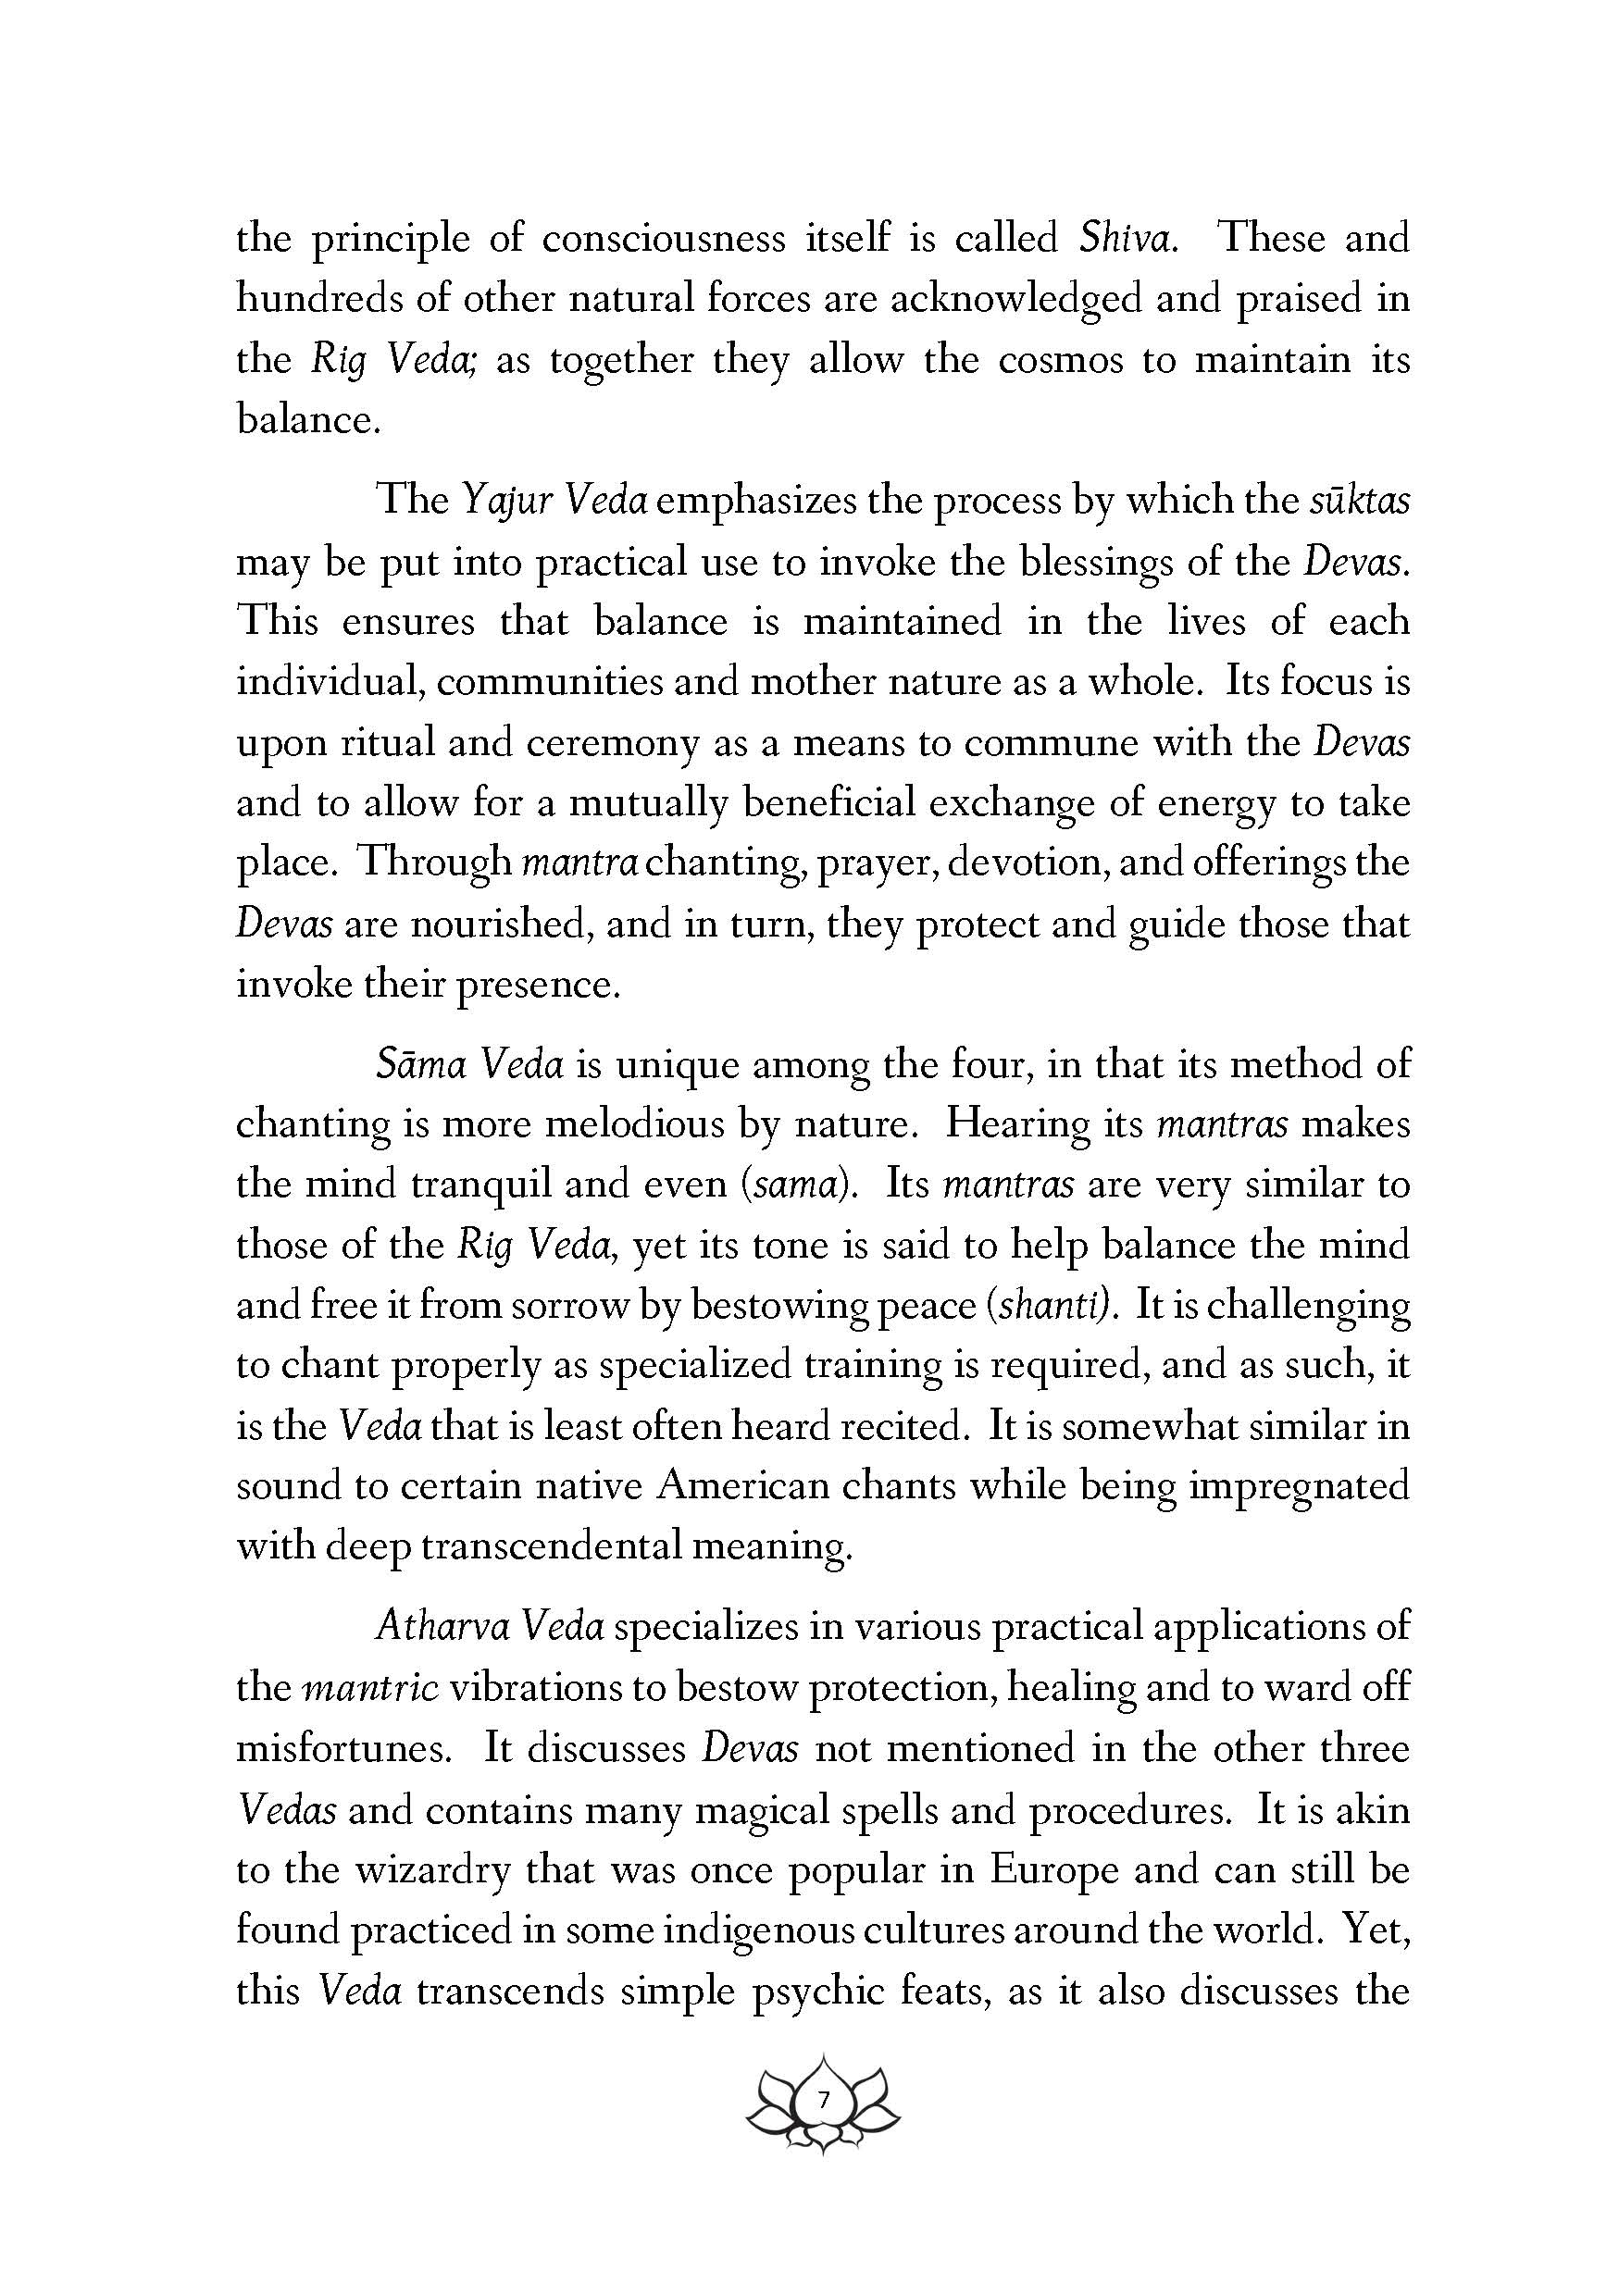 The Way of Oneness - PDF Download_Page_020